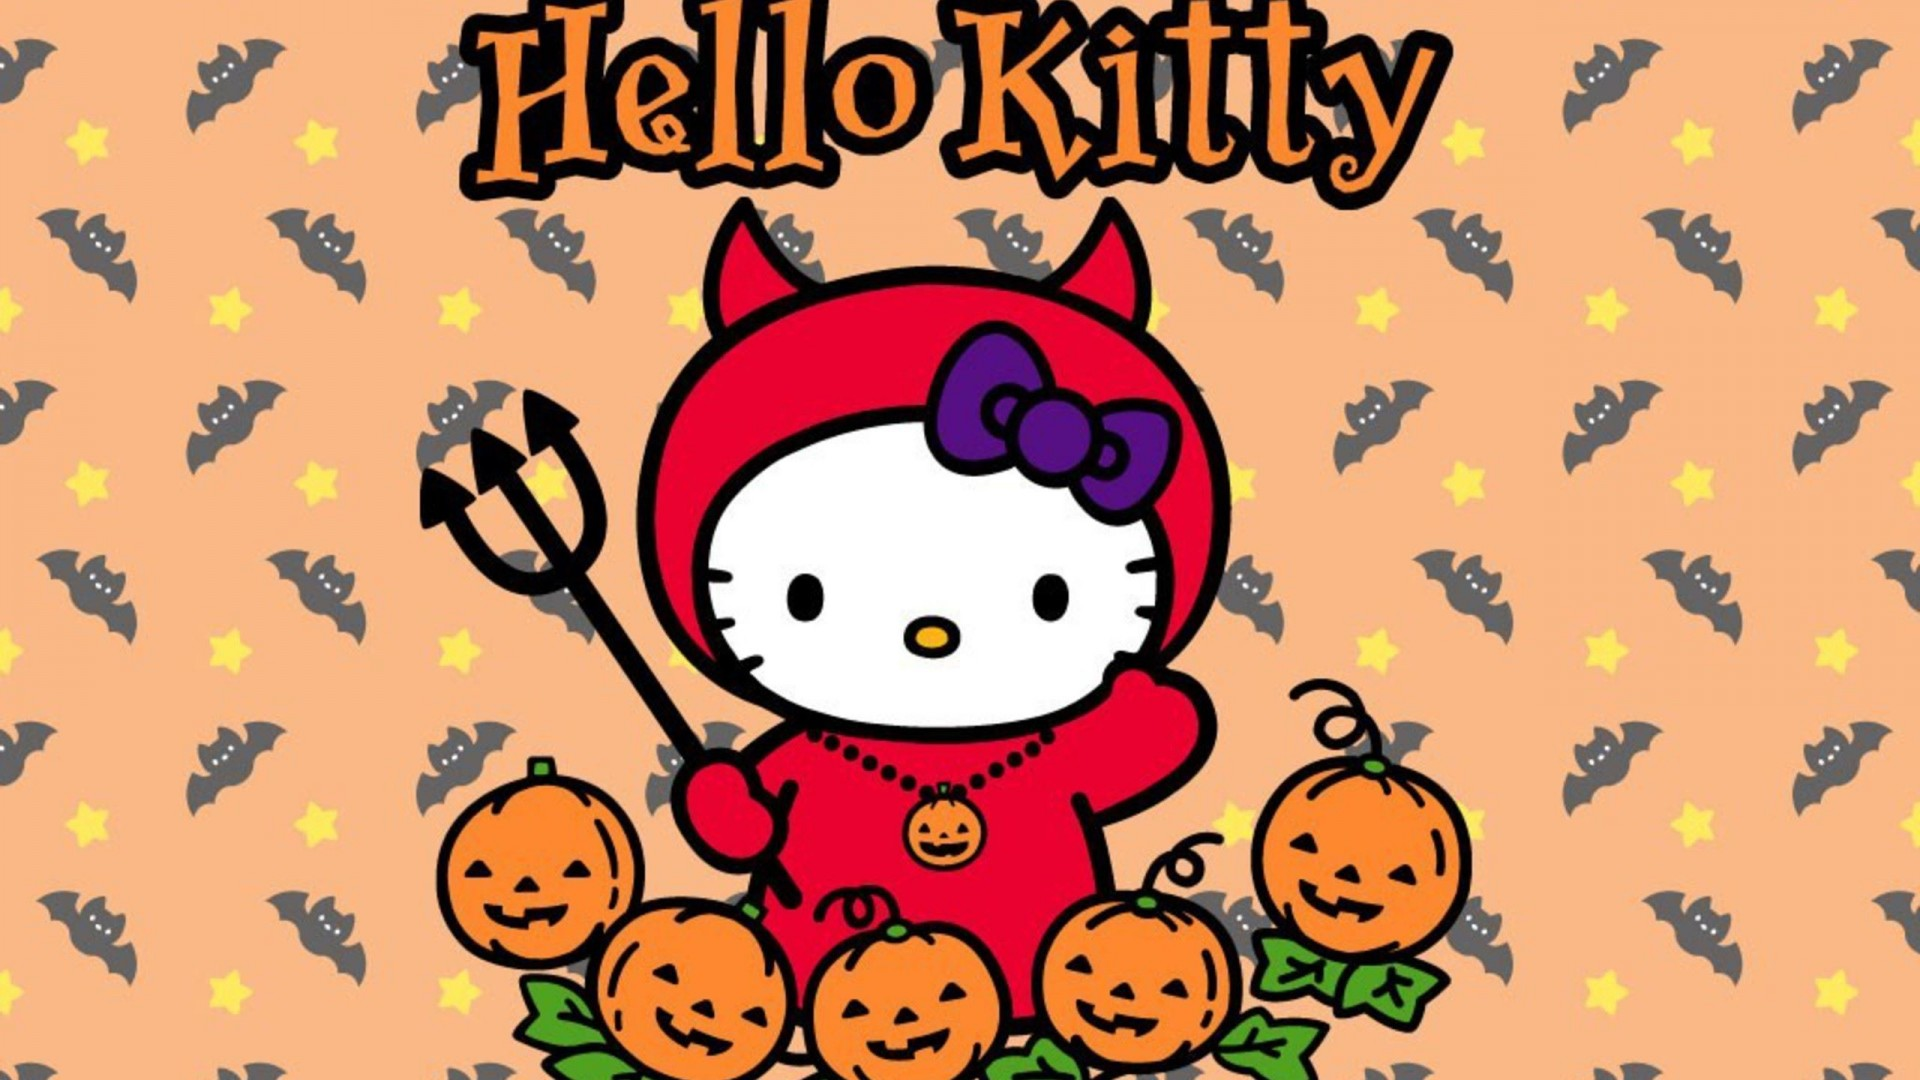 Download Free Hello Kitty Halloween Wallpapers | PixelsTalk.Net